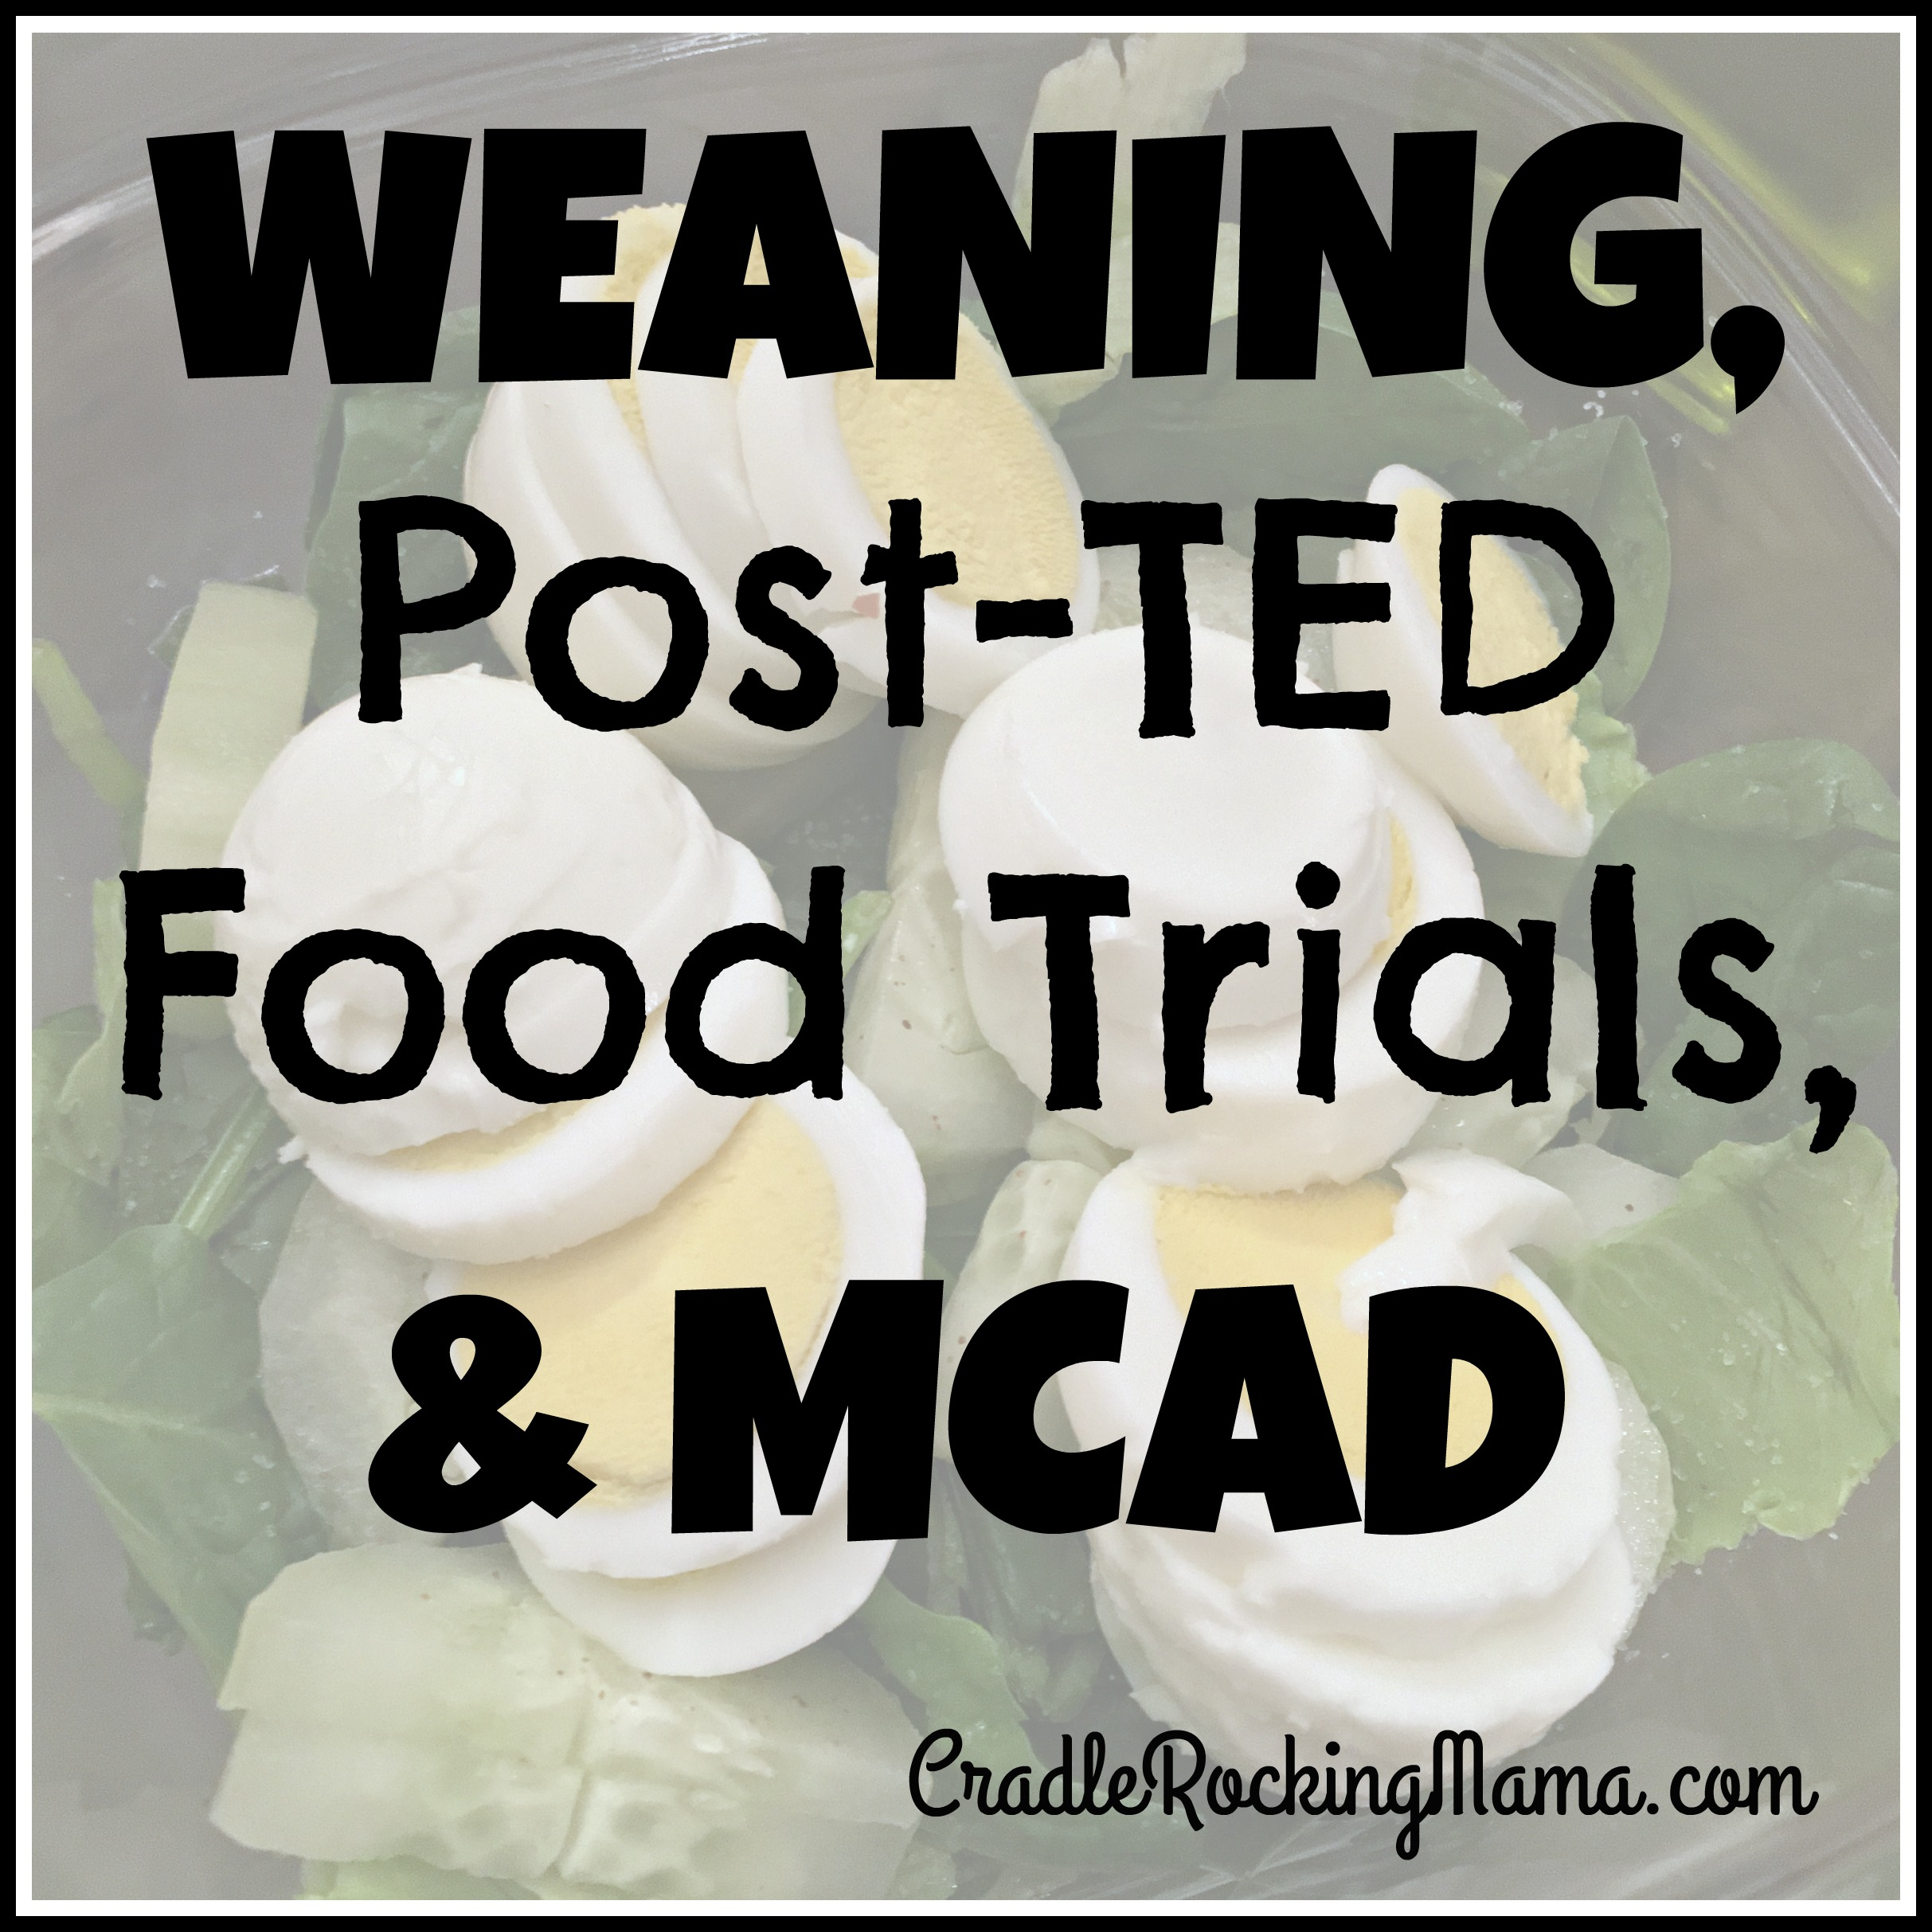 Weaning, Post-TED Food Trials & MCAD CradleRockingMama.com